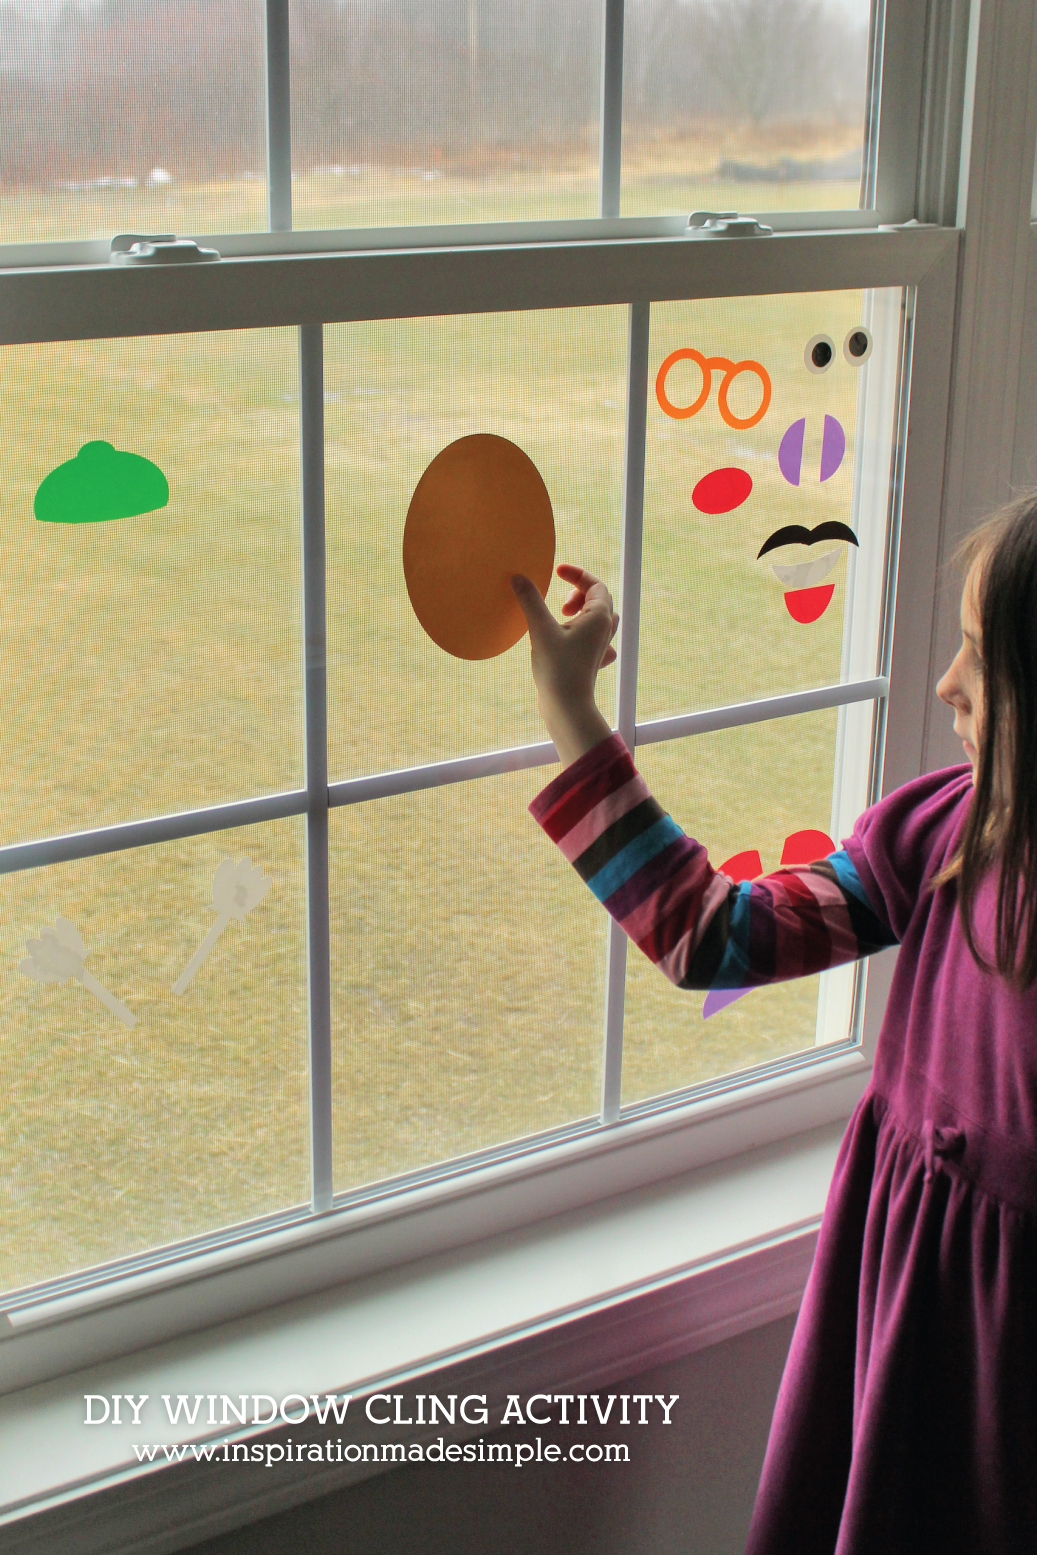 DIY Window Clings make for a fun kids activity!